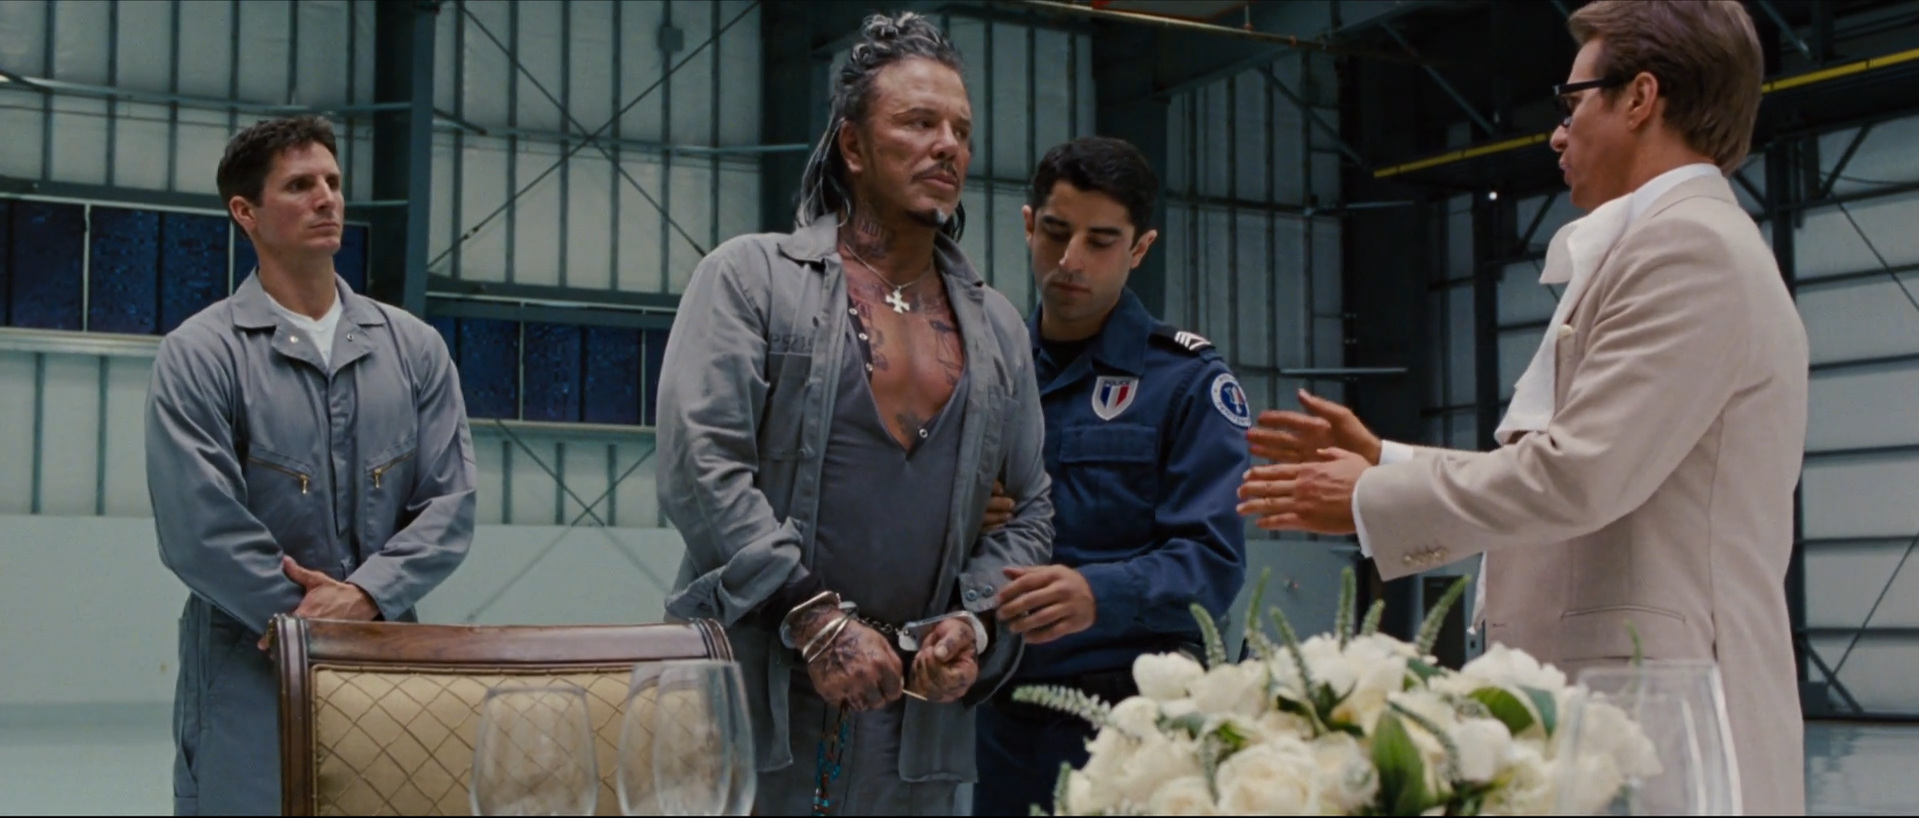 Iron Man 2  (2010): the slimy Justin Hammer (right) makes a deal with the devil, Ivan Vanko (center)